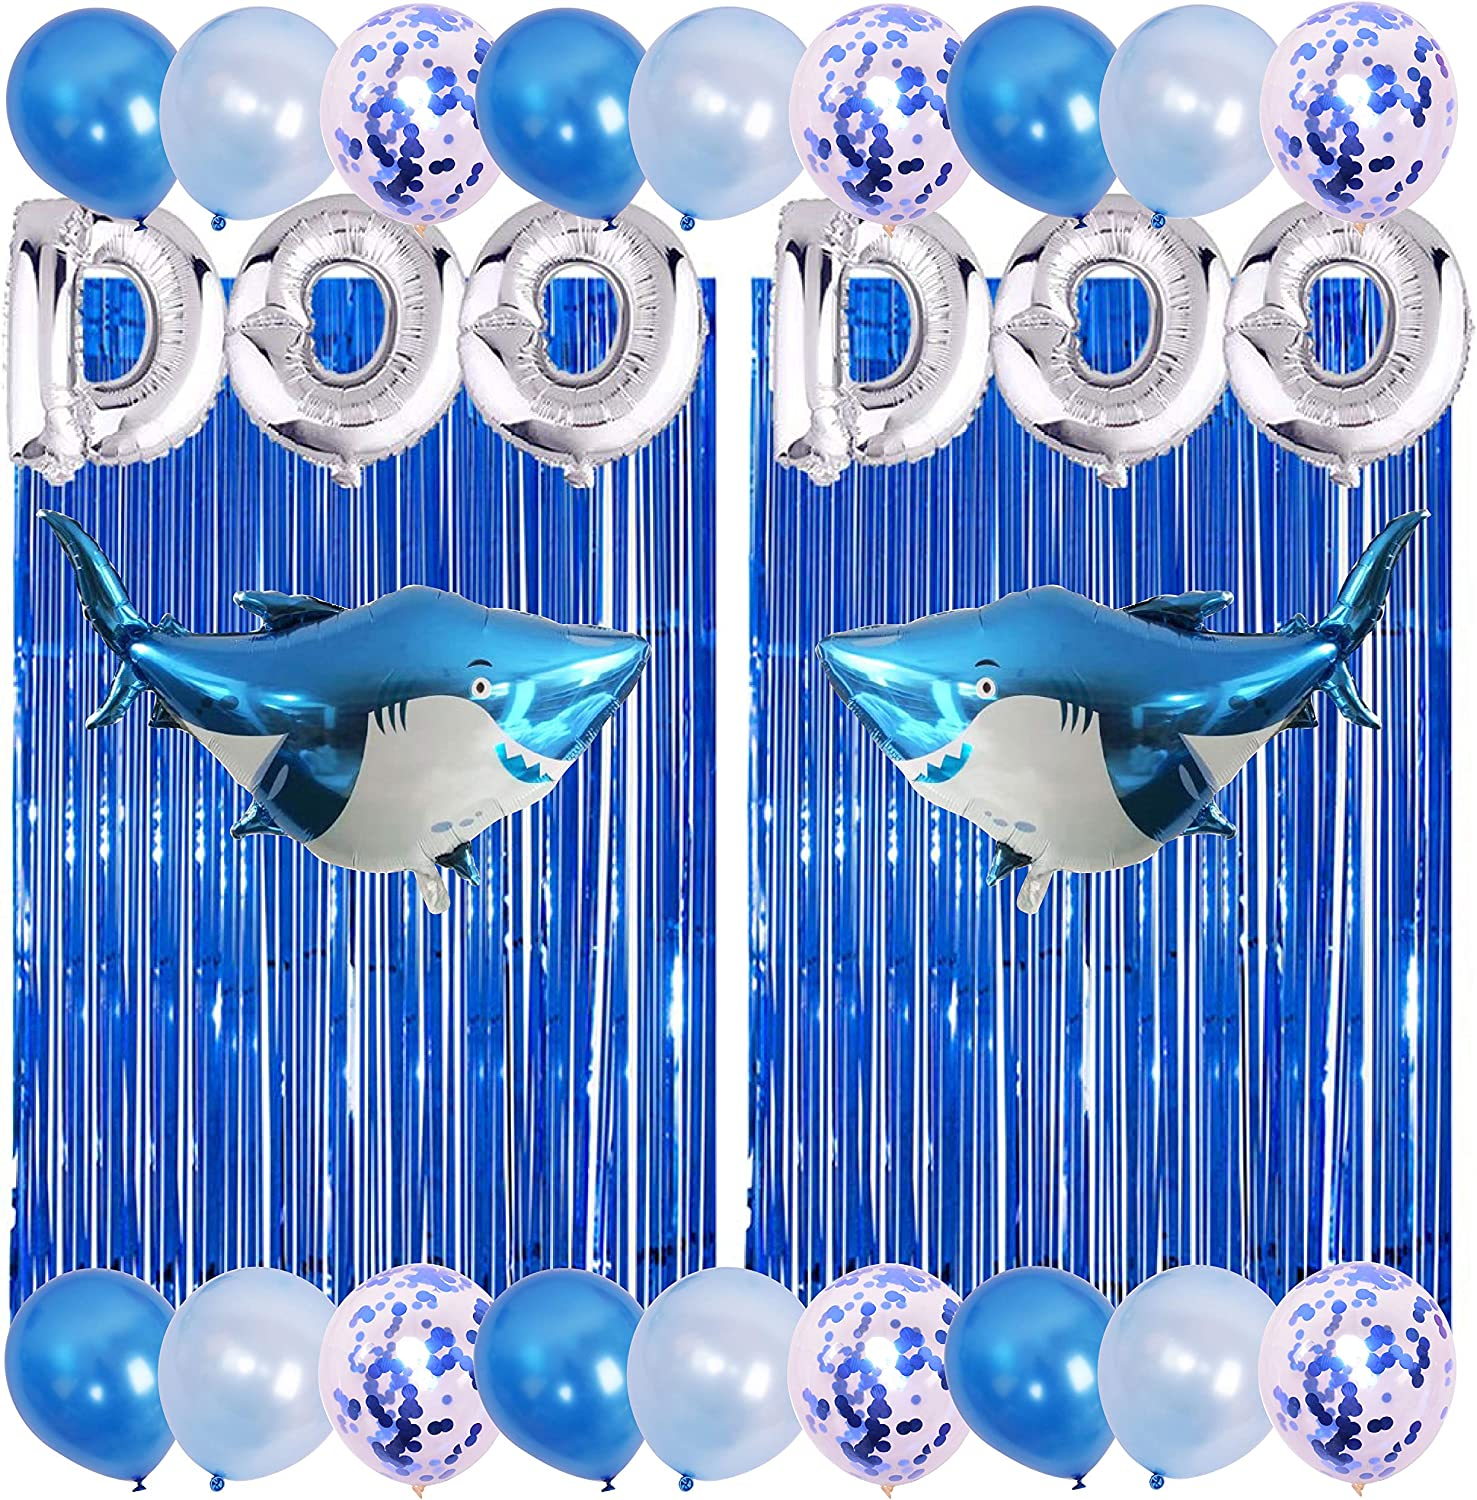 Baby Shark Birthday Party Decorations Include 2 PACK Metallic Foil Fringe, Silver Letter DOO DOO, 2 Foil Shark Balloons,12 Latex Balloons and 6 Confetti Balloons Baby Shark Party Supplies By 7 Colors Kids